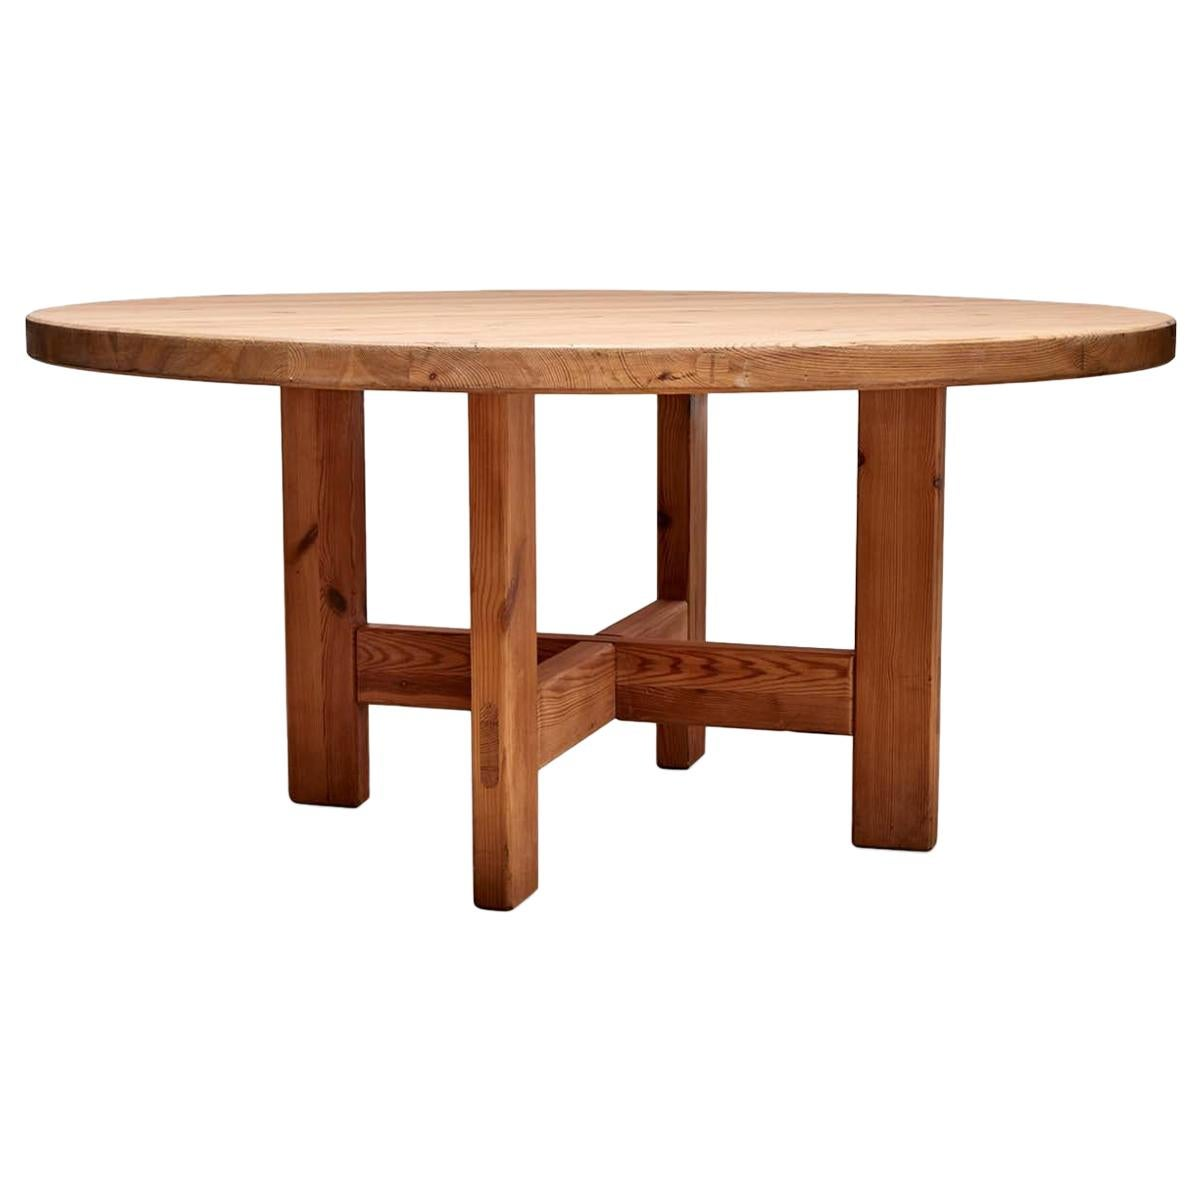 Solid Pine Dining Table by Roland Wilhemsson for Karl Anderson & Soner